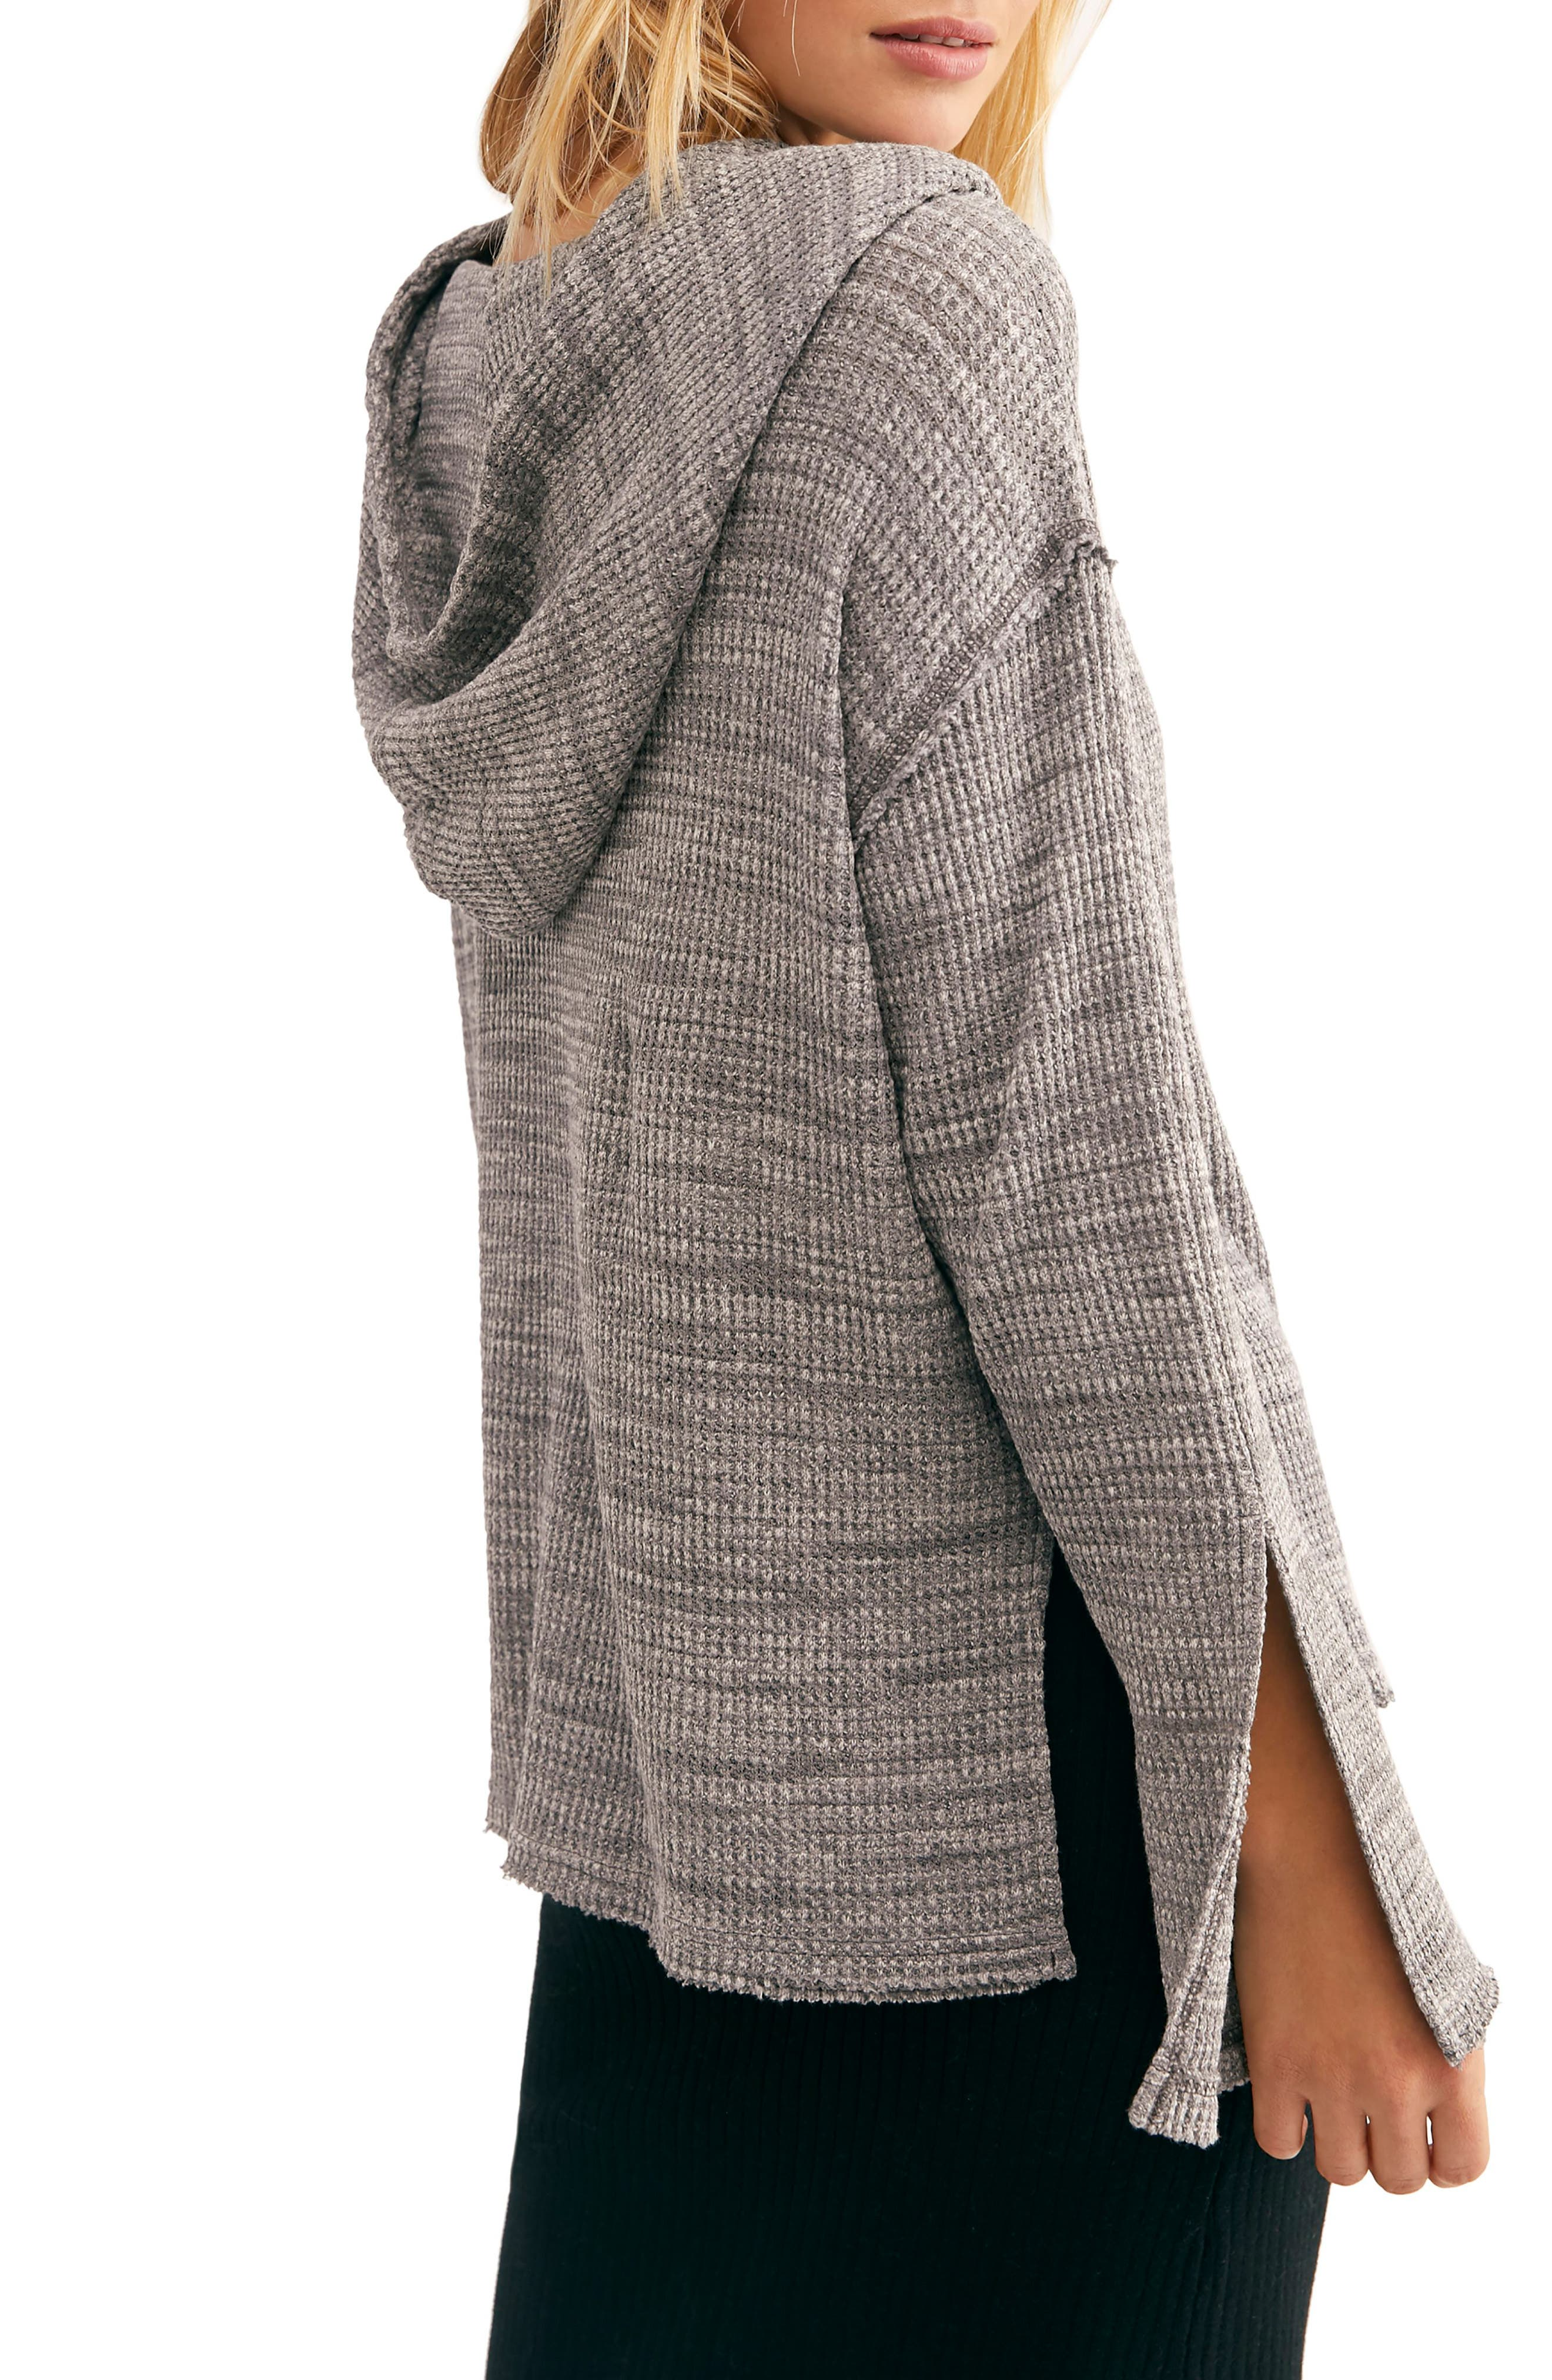 FREE PEOPLE, Endless Summer by Free People Hooded Knit Top, Alternate thumbnail 2, color, GREY